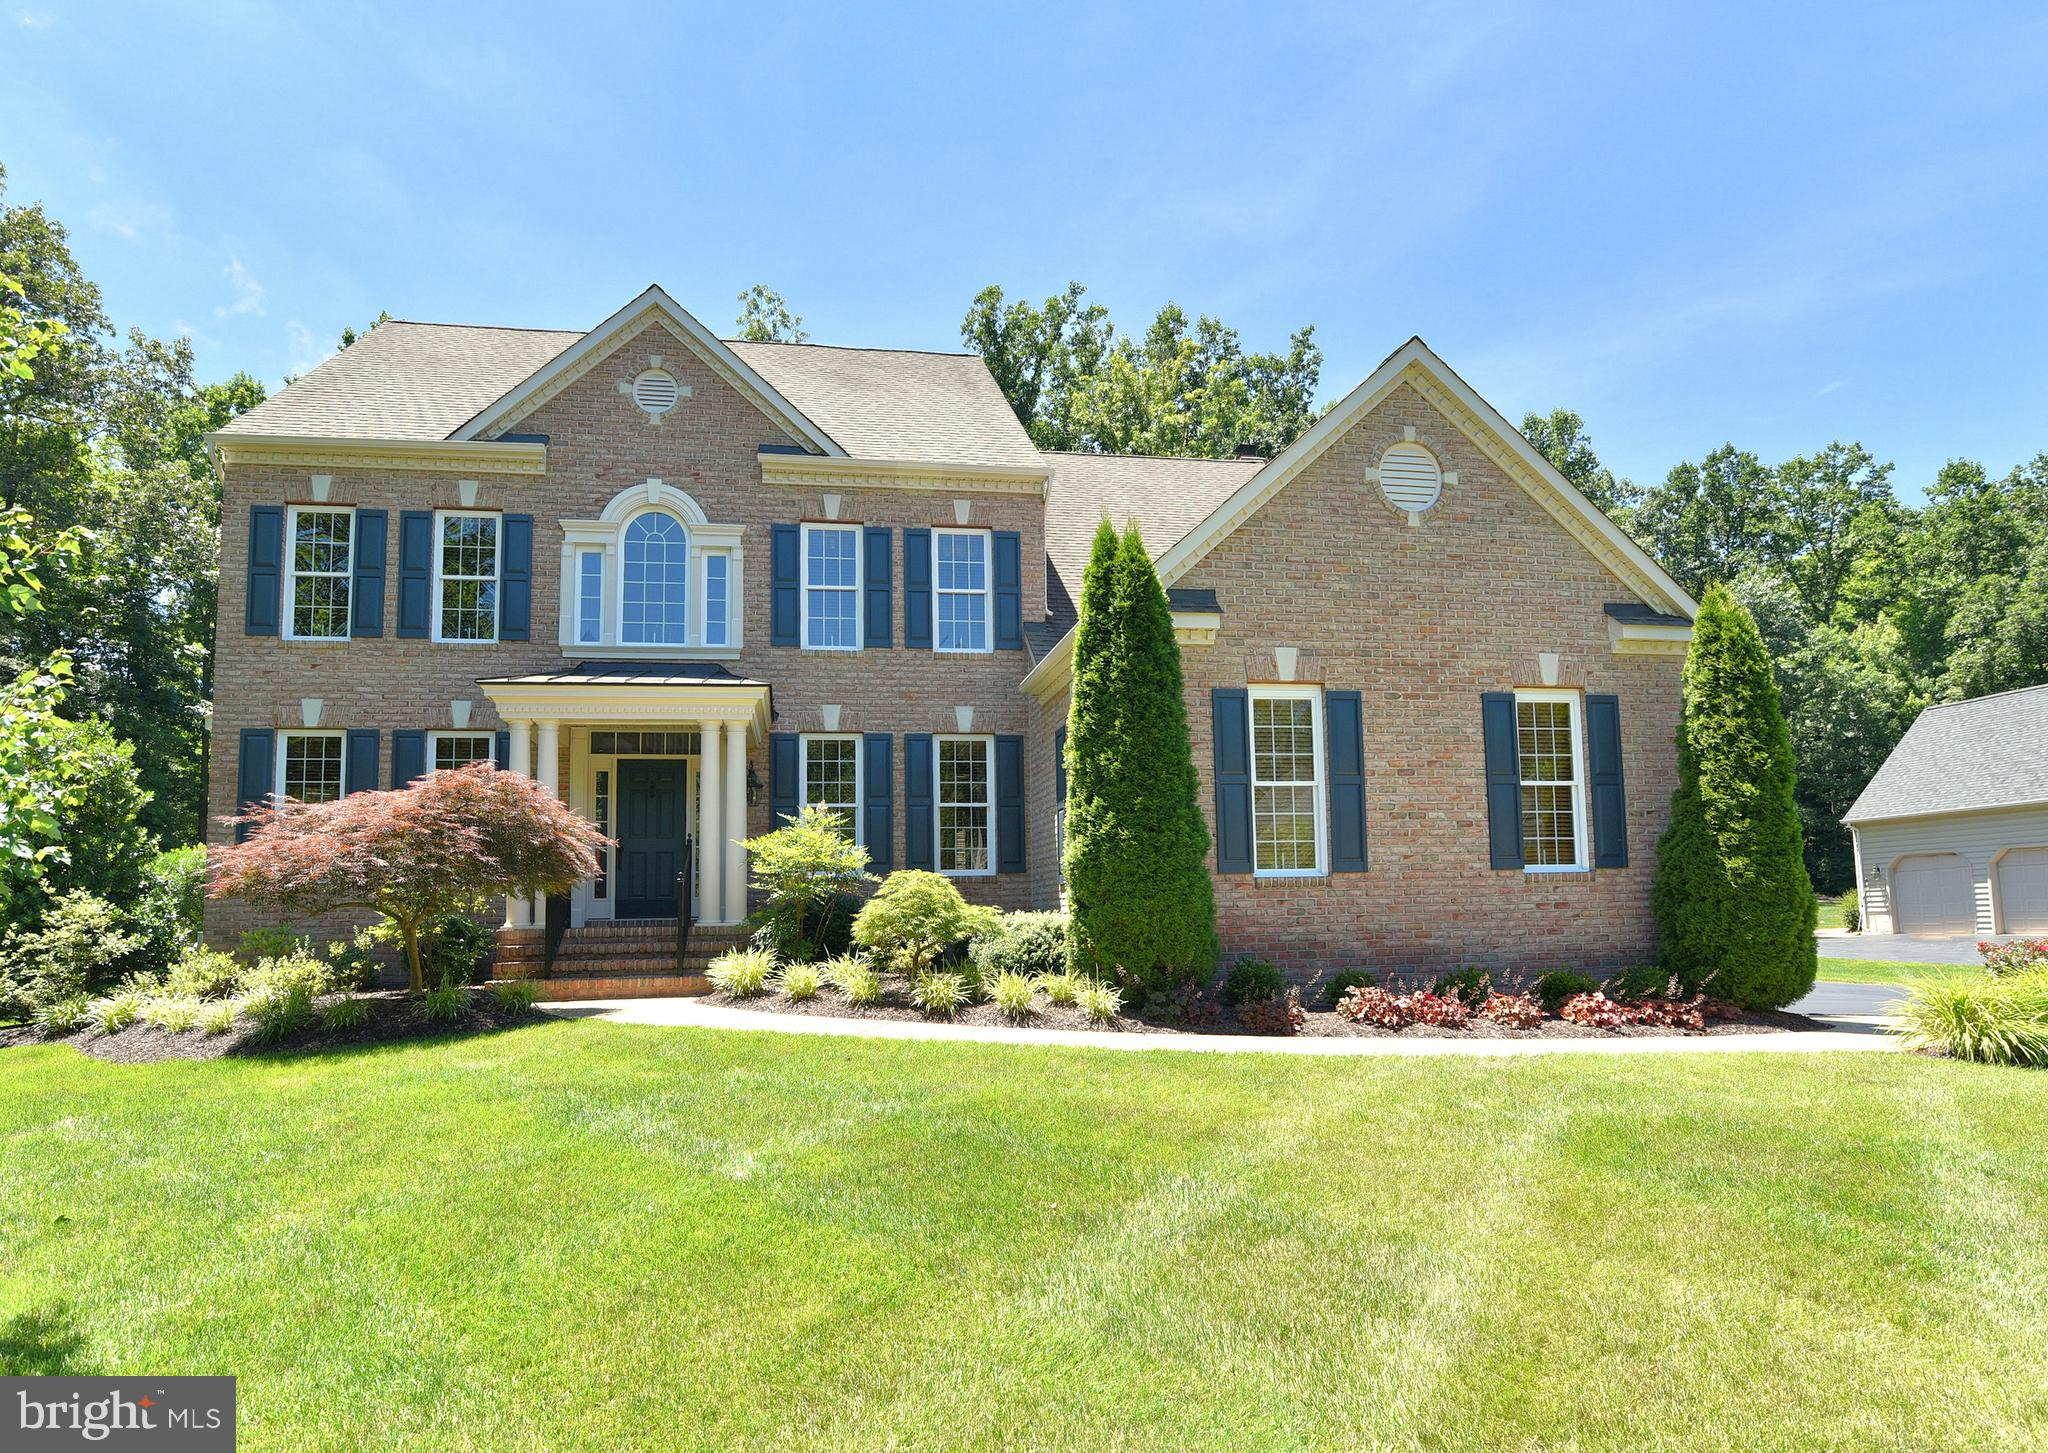 501 BROAD STREAM LANE, DAVIDSONVILLE, MD 21035